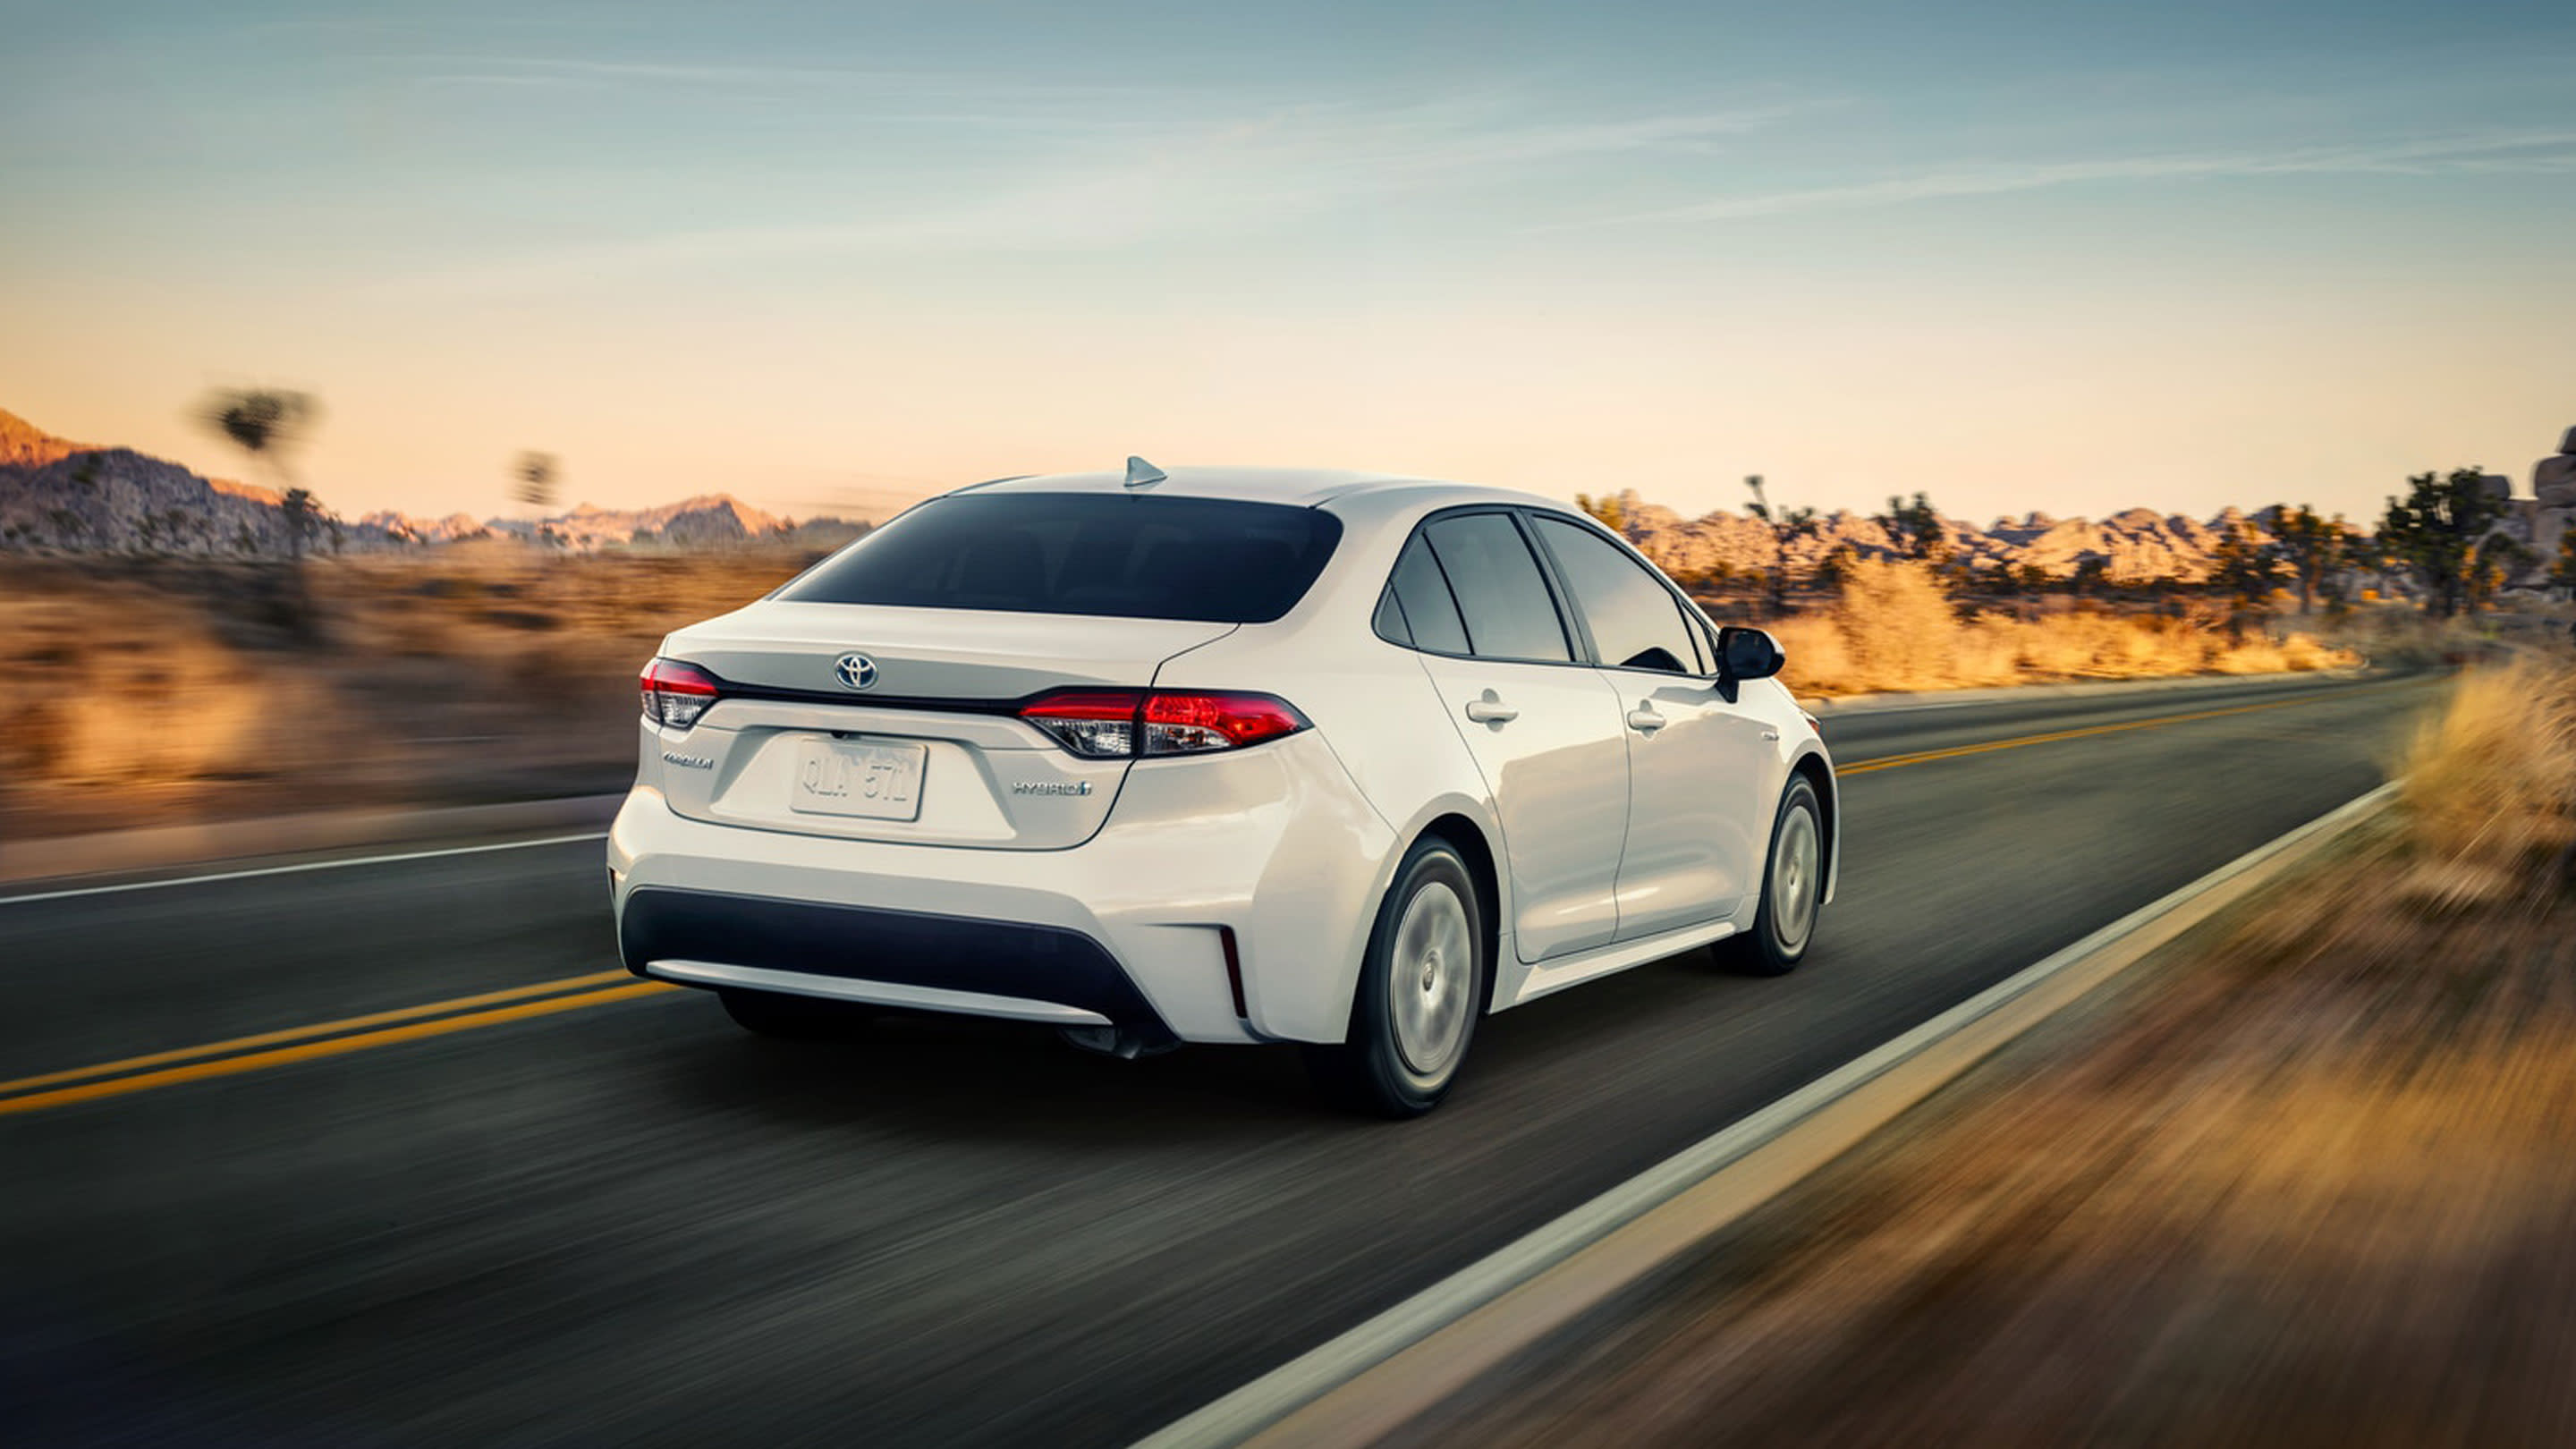 The 2020 Toyota Corolla available at Uebelhor Toyota near Evansville, IN